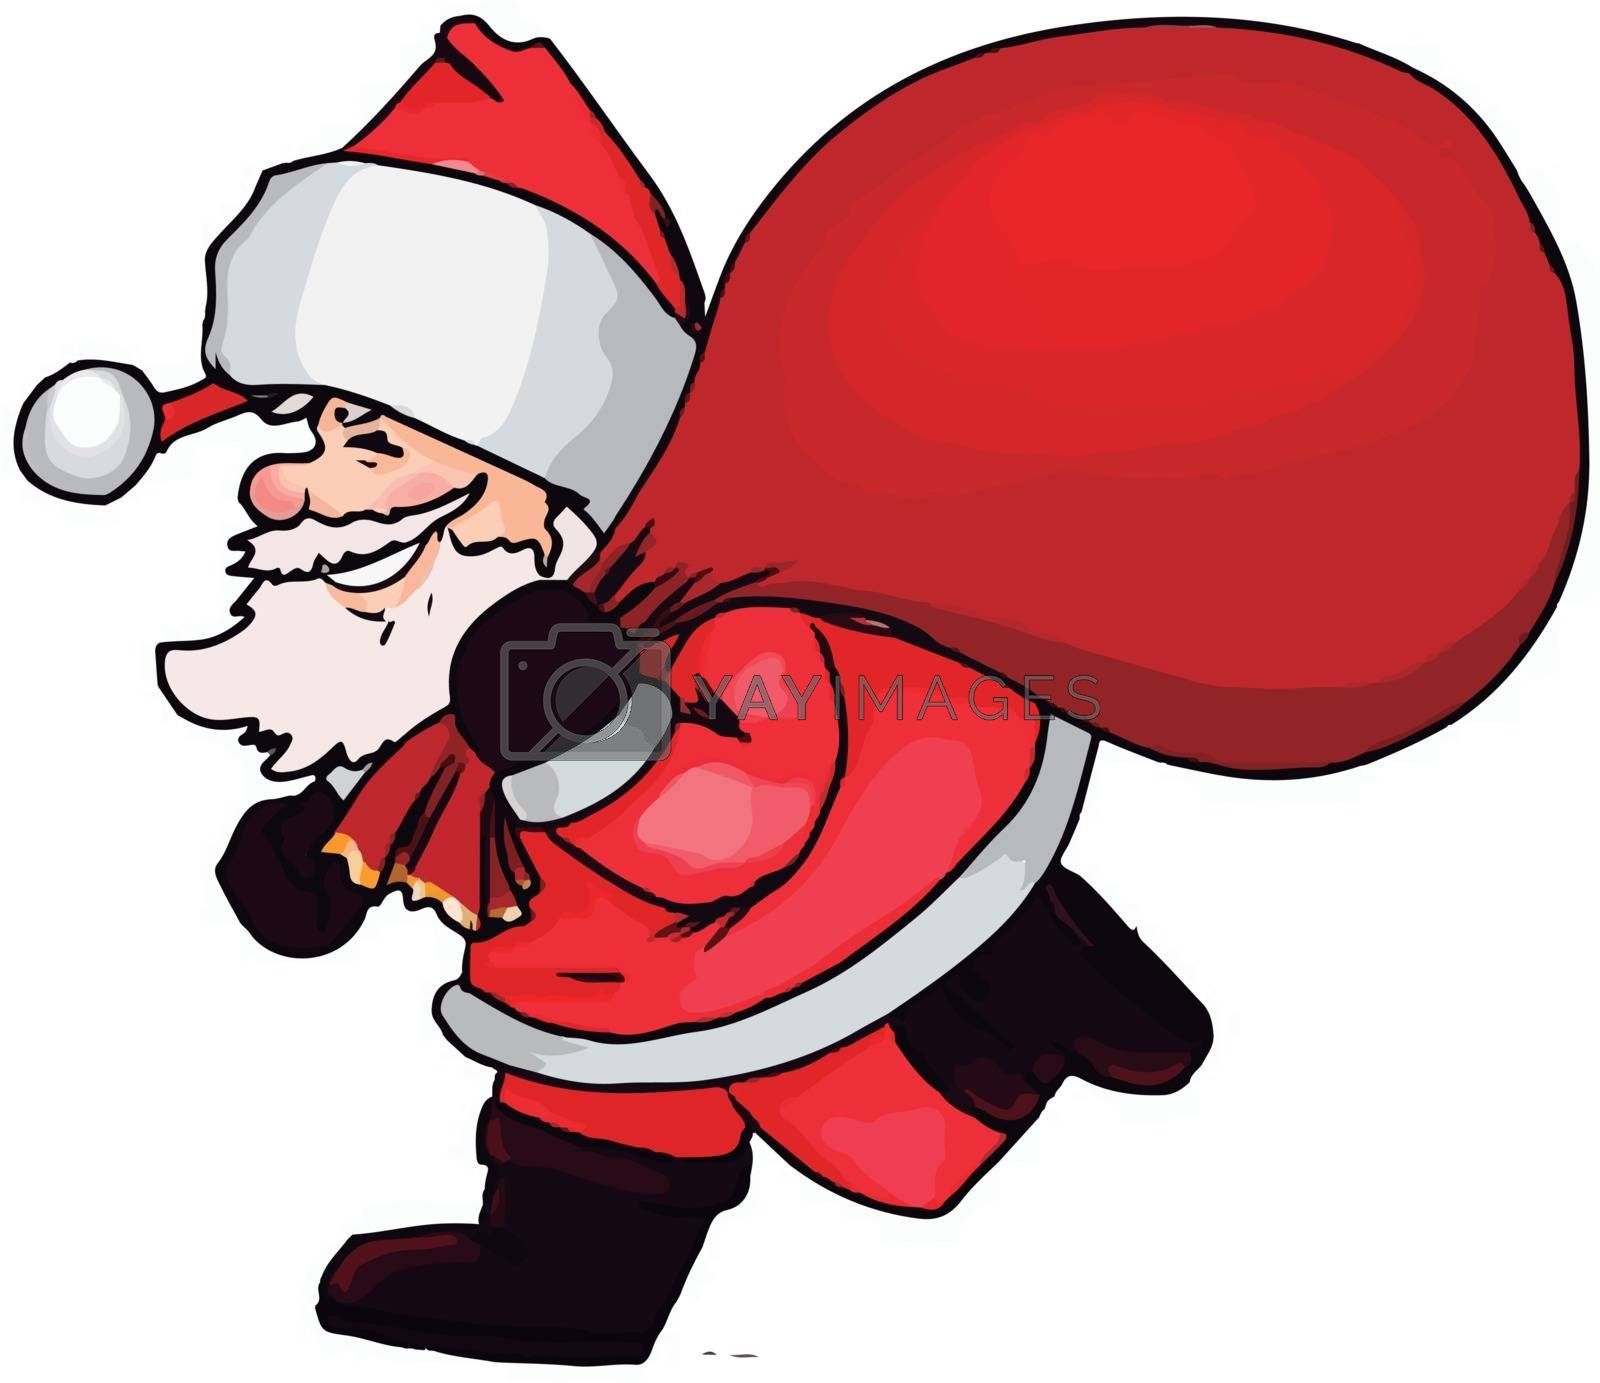 Santa claus with a big bag full of gifts, illustration, vector on white background.